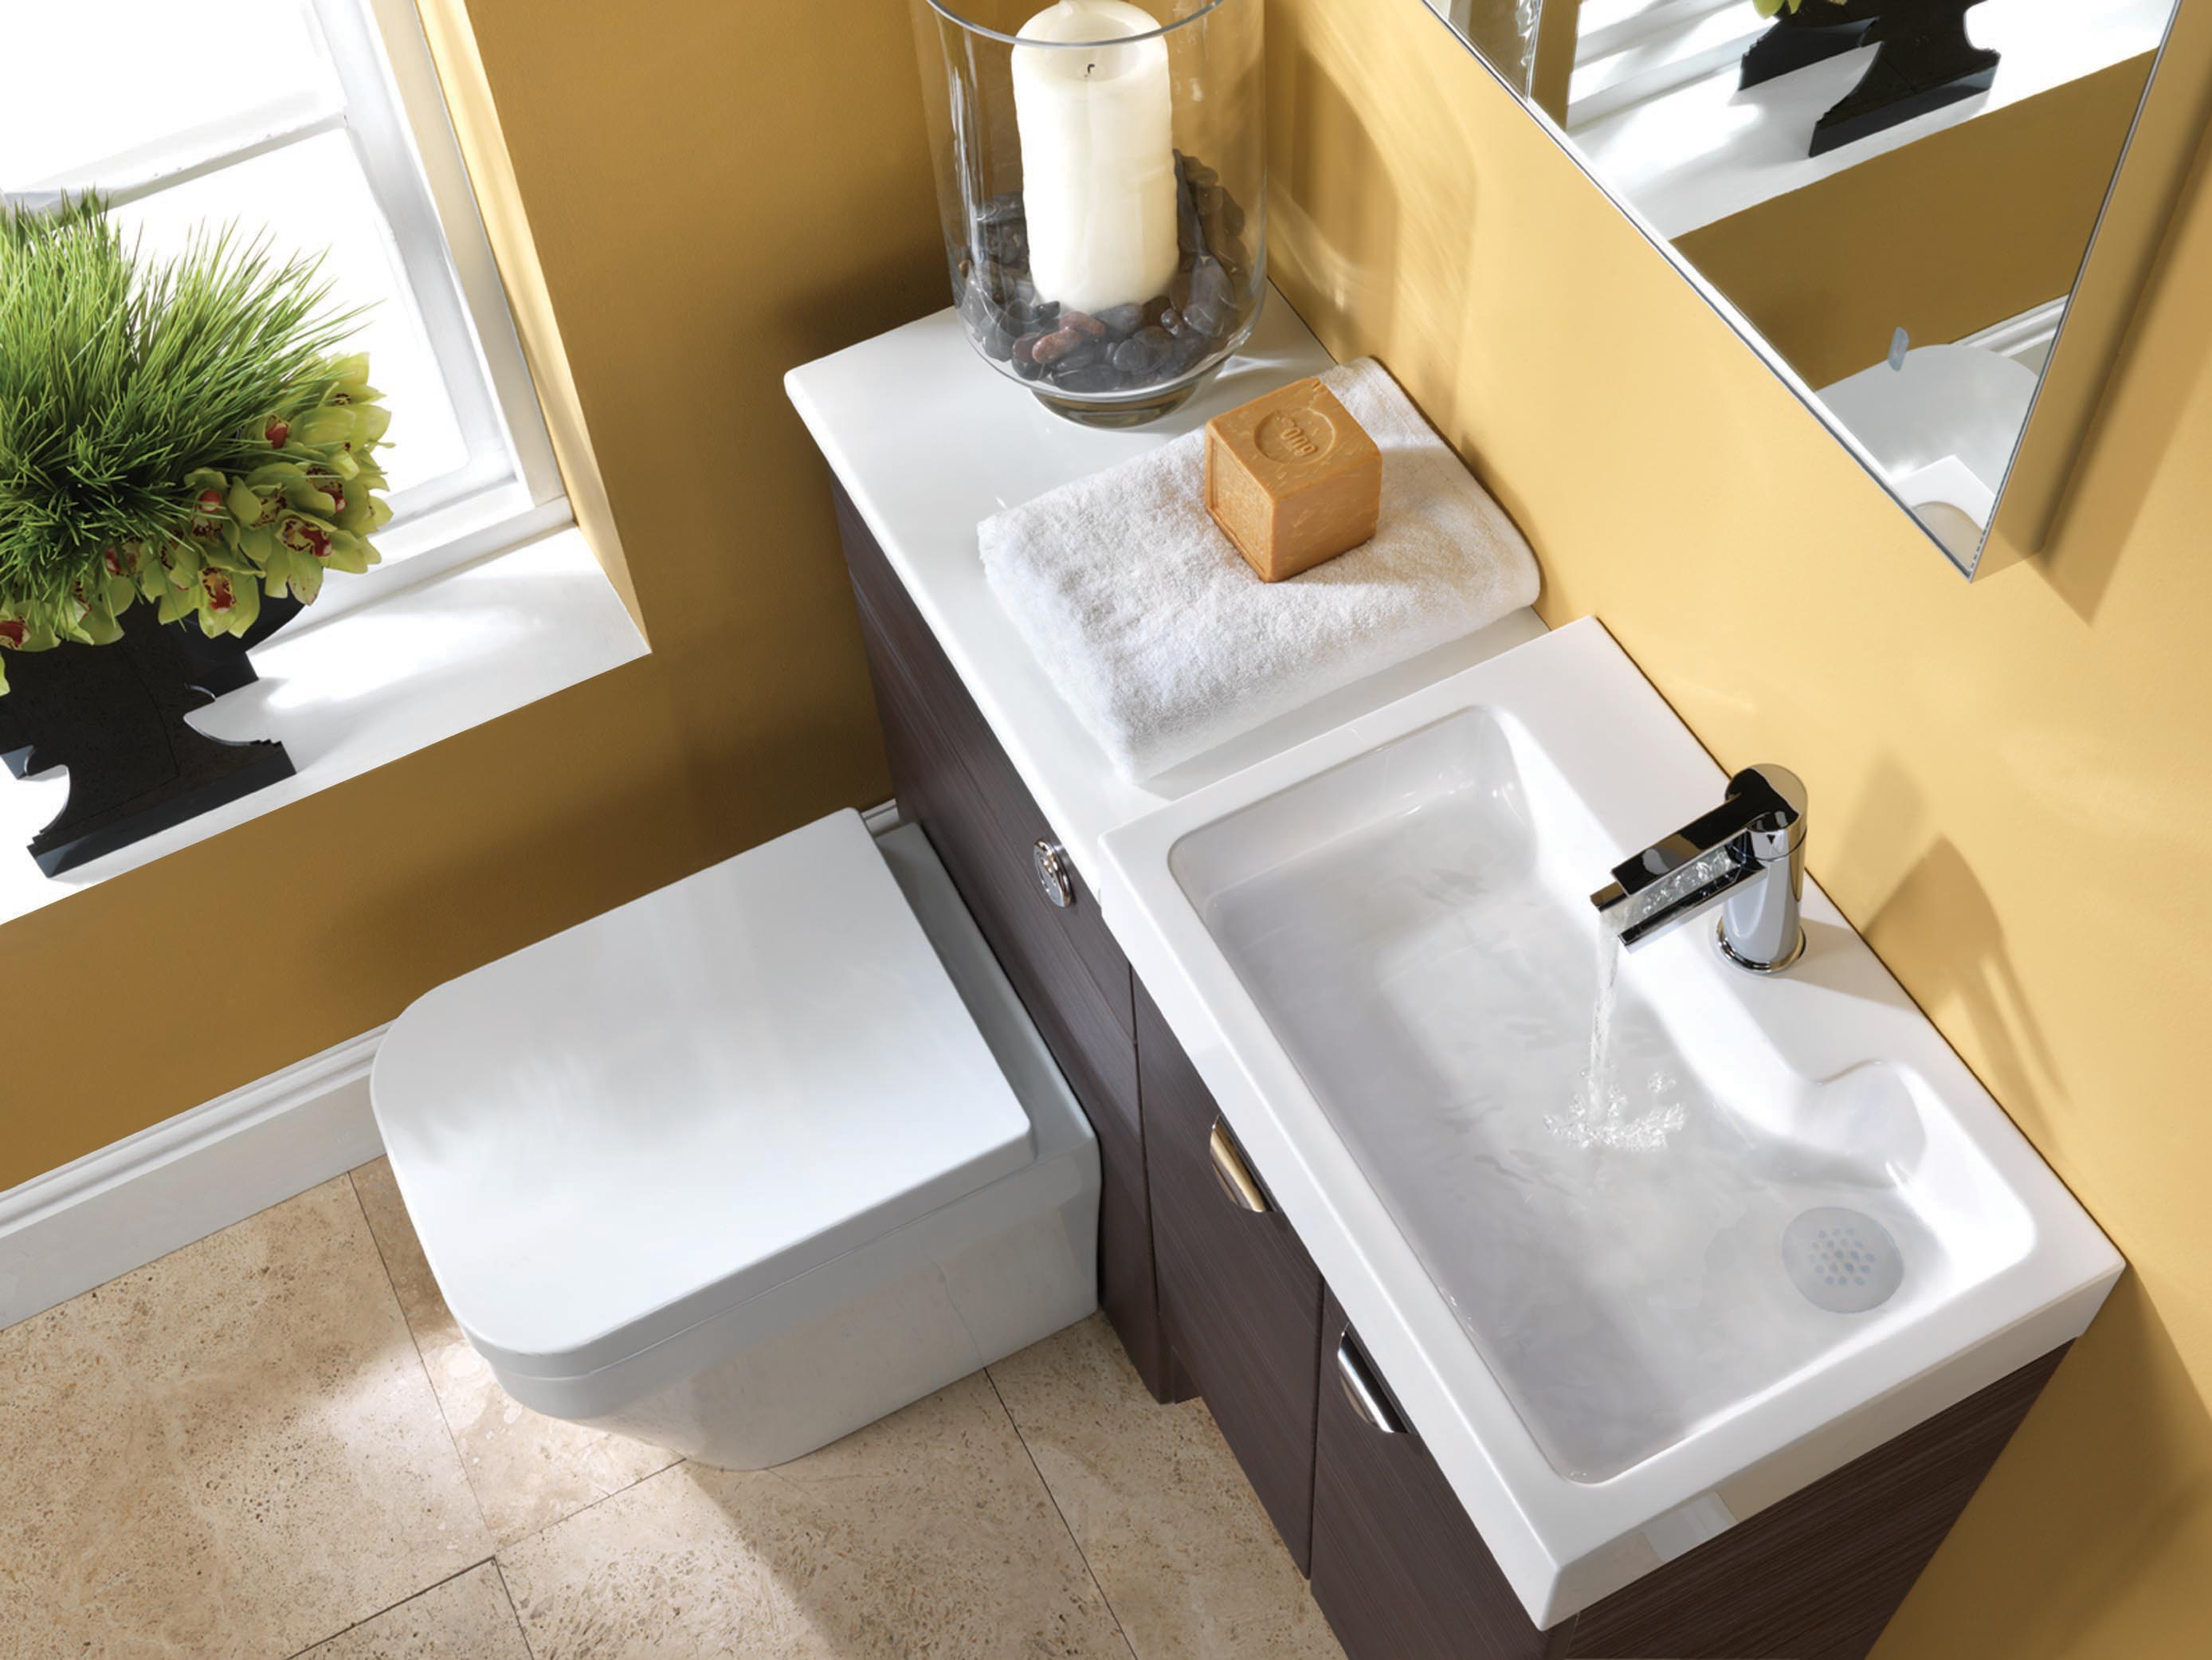 All In One Bathroom Wholesale Domestic Bathroom Blog Toilet Buying Guide